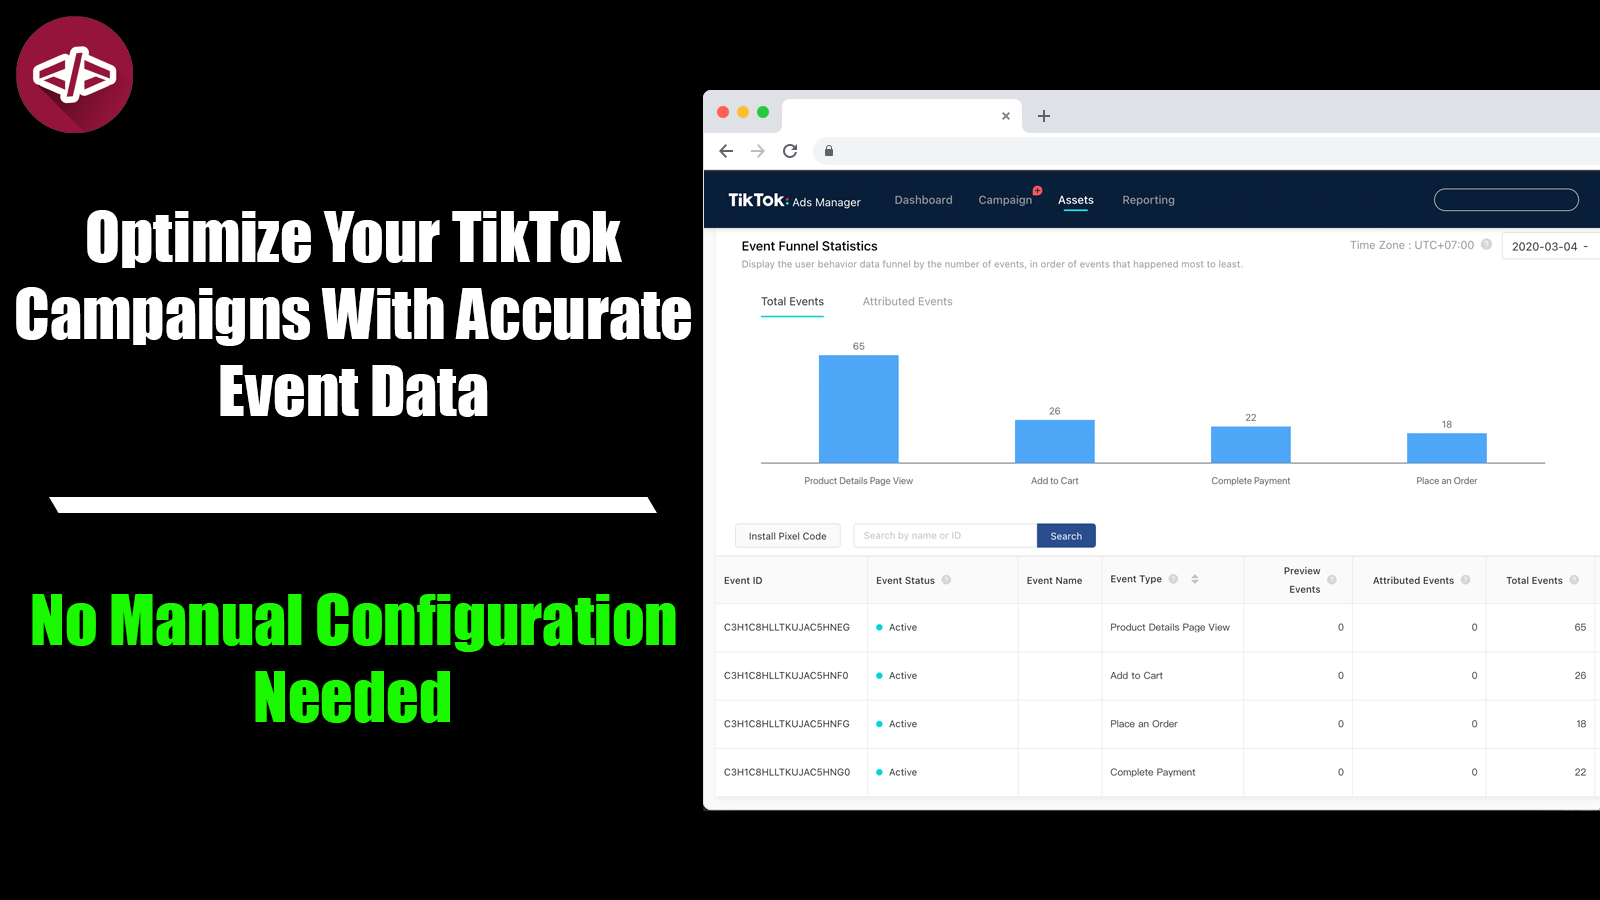 The app in action: The dashboard of the TikTok Ads